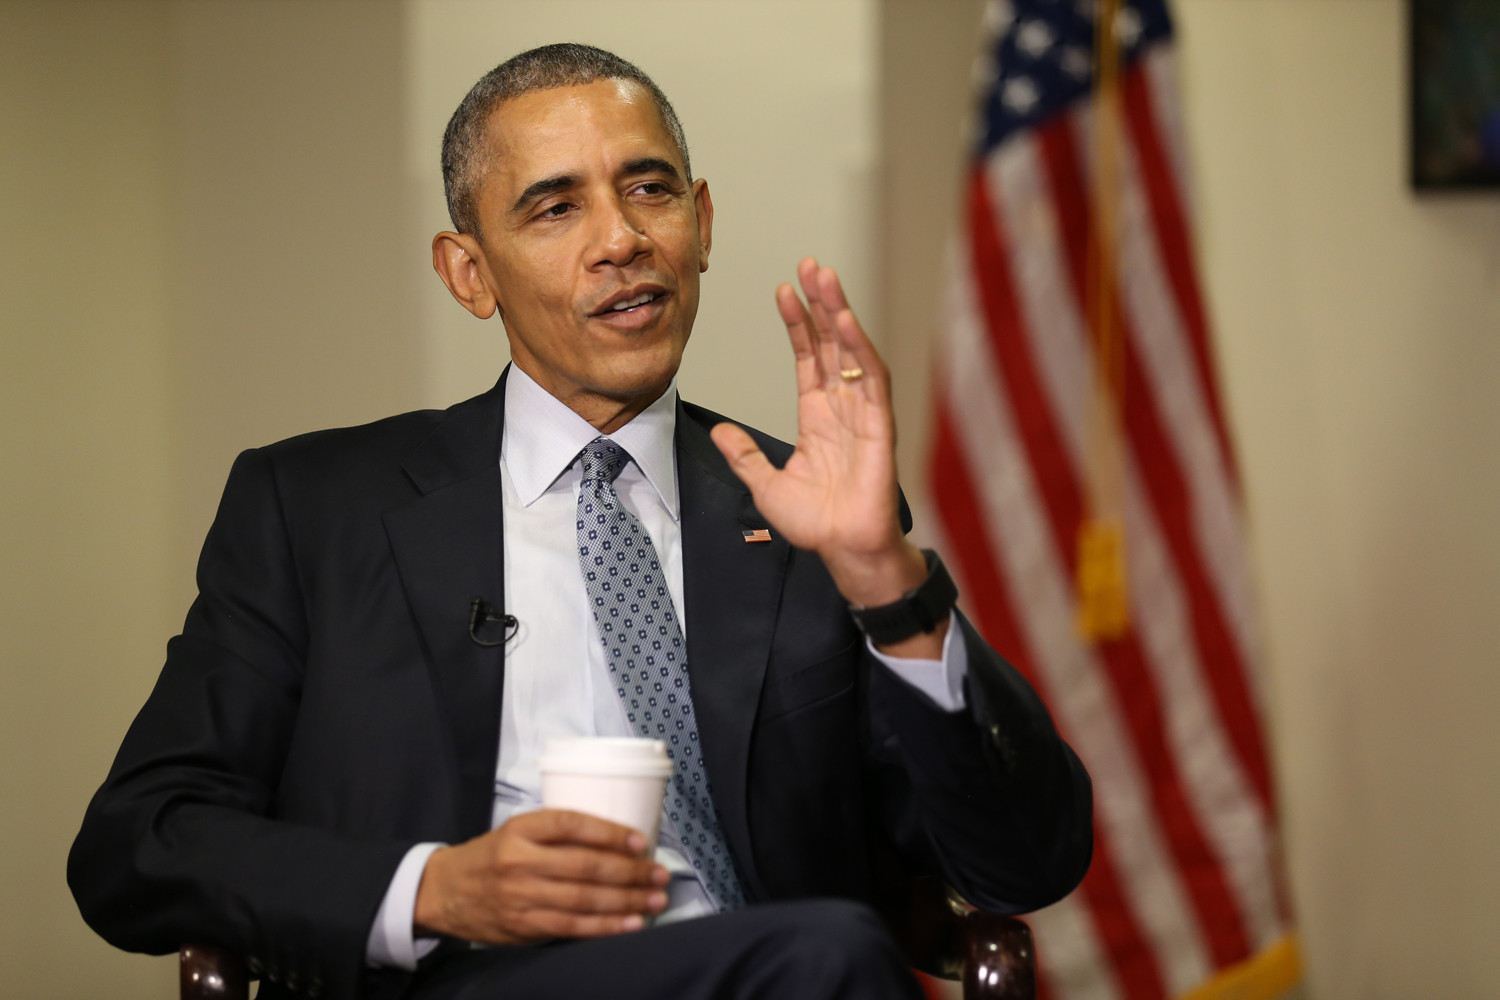 Obama interview: 'Maybe I could have done ... a little better'